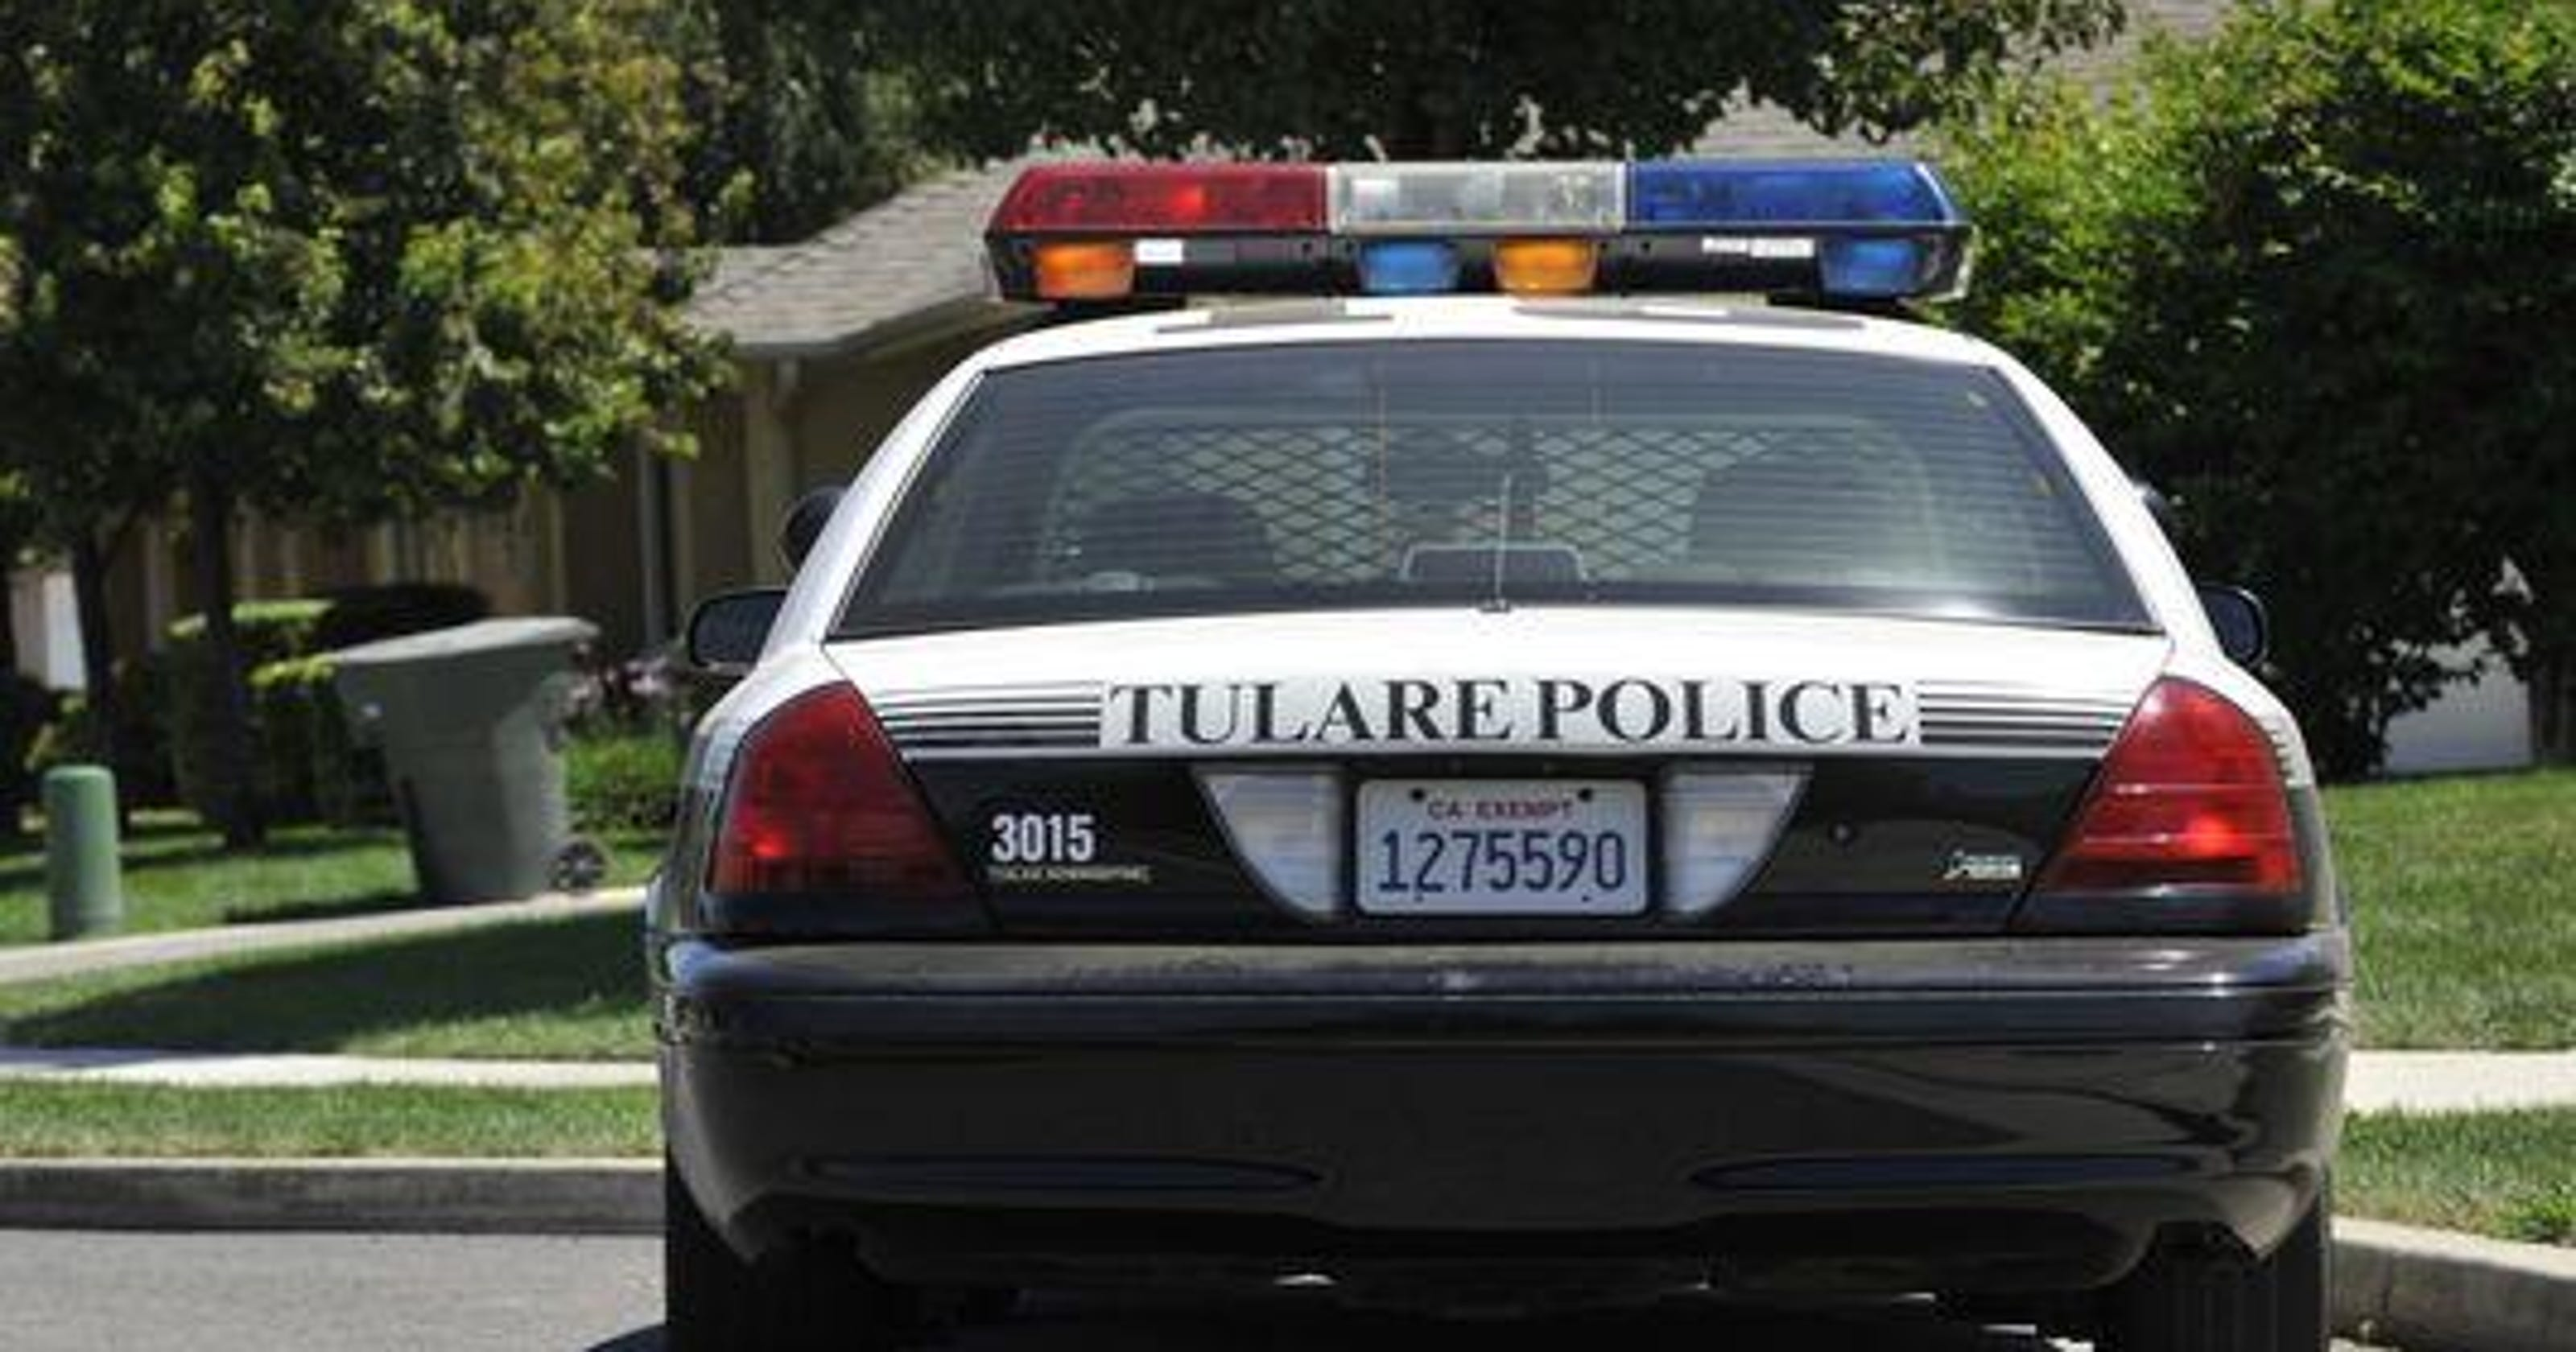 Tulare: We didn't mean to share license plate information with ICE